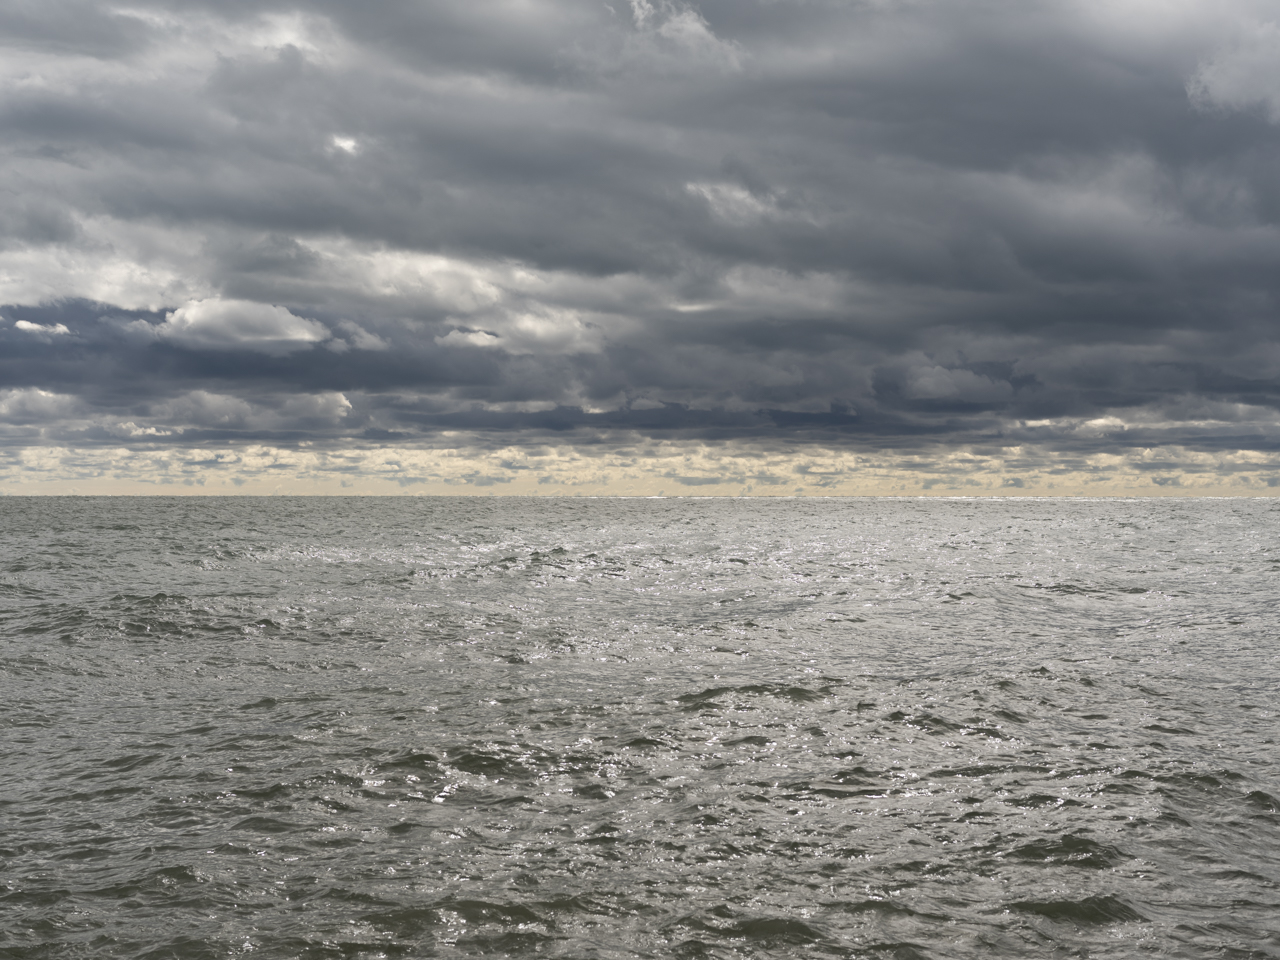 stormy and dark blue and black clouds sit heavily in the sky over bronze and green-gray waters